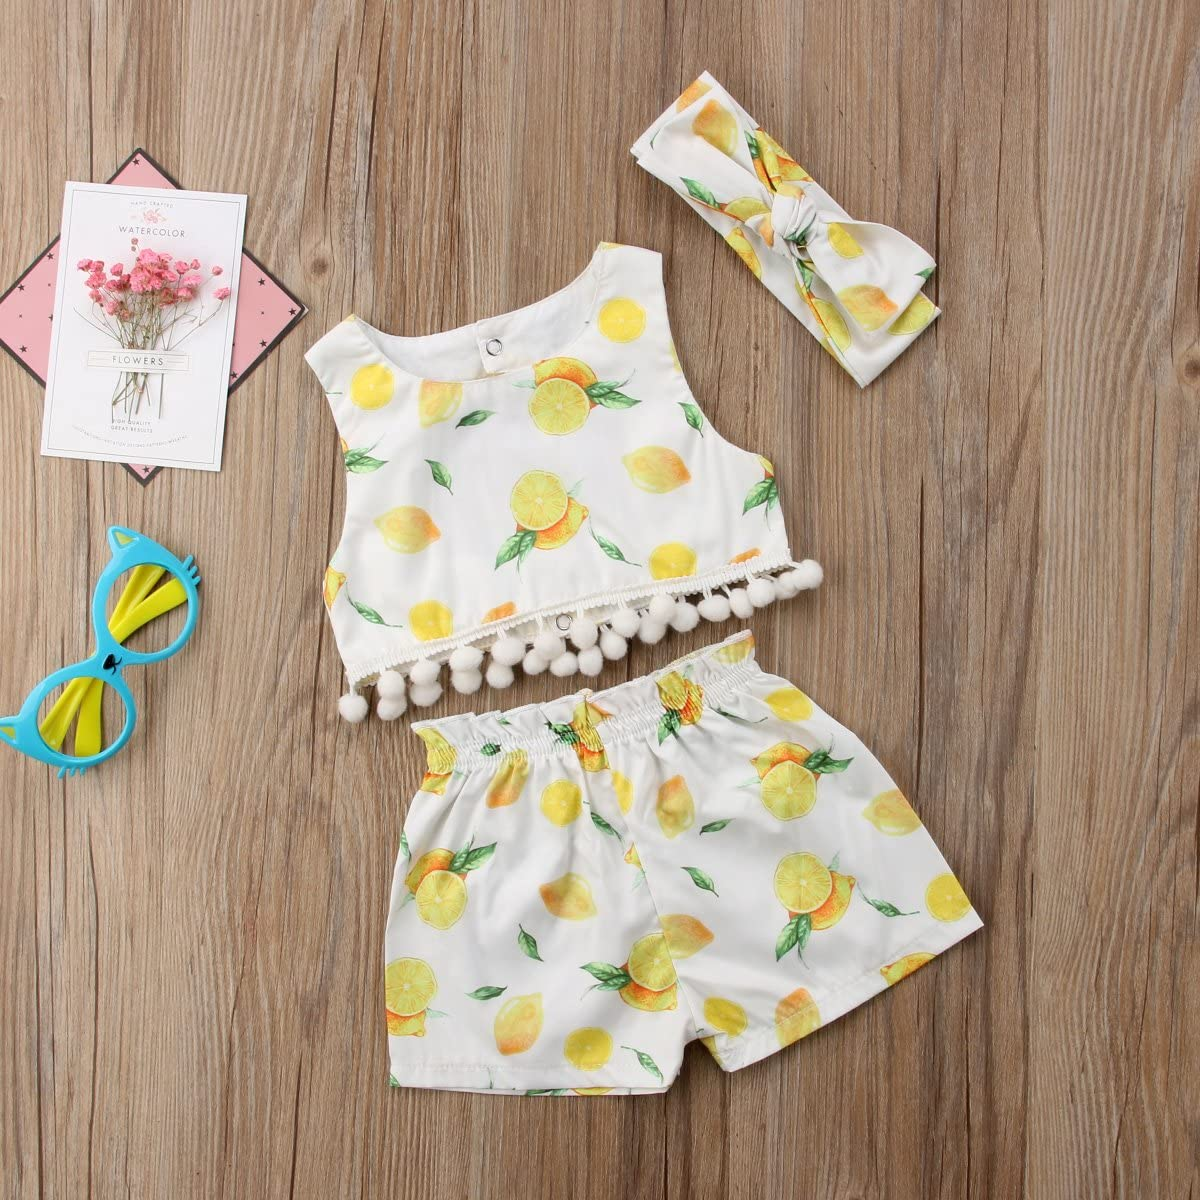 3Pcs Baby Girls Sleeveless Crop Top with Pompom+Lemon Shorts+Headband Outfit Set